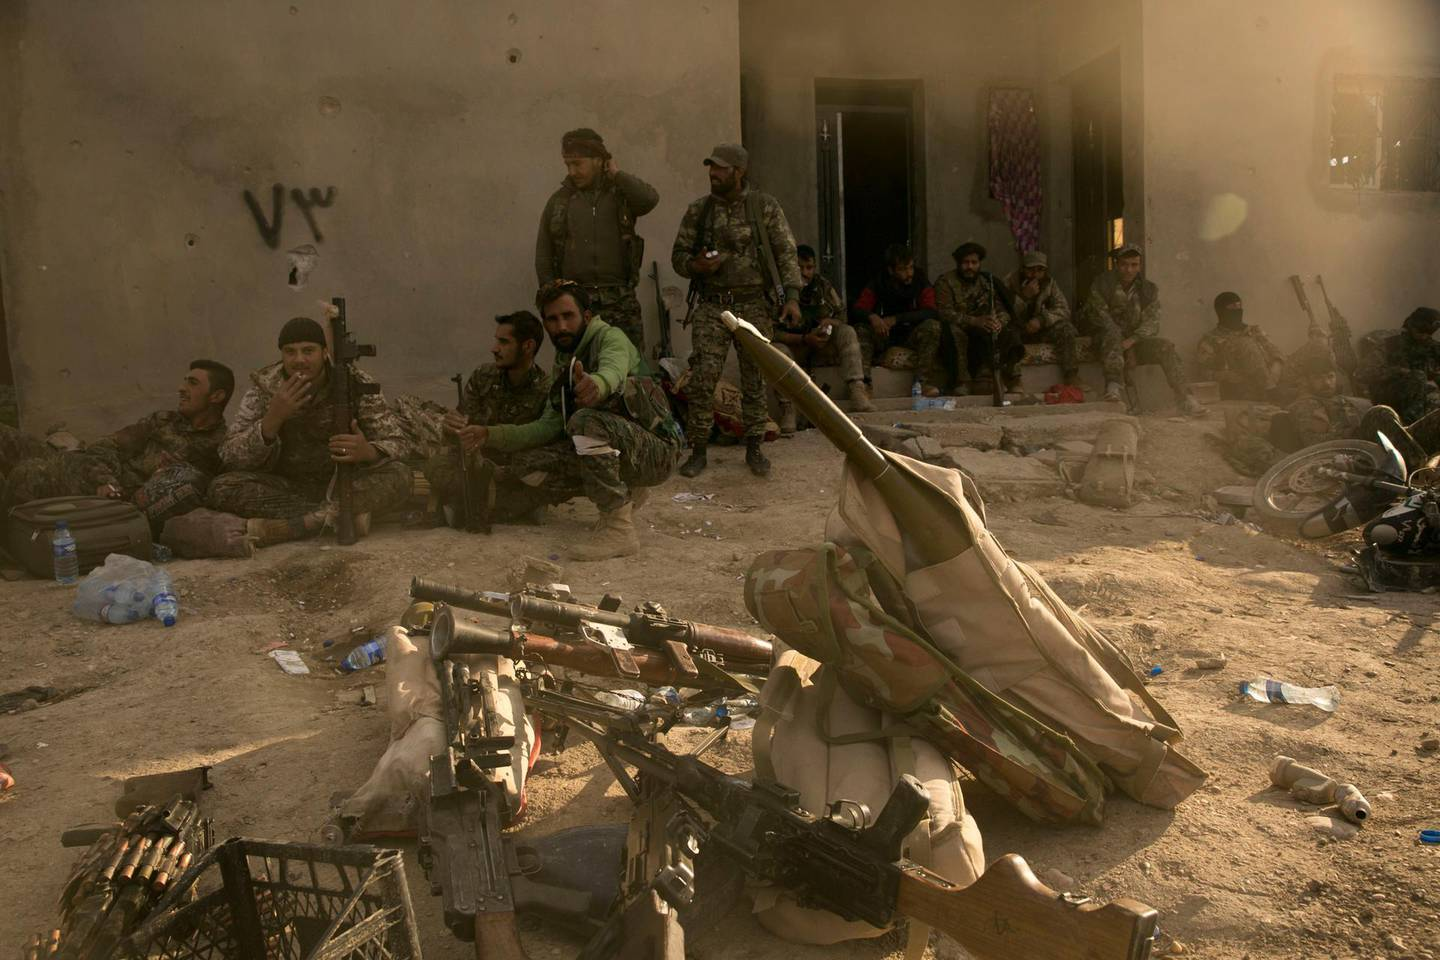 U.S.-backed Syrian Democratic Forces (SDF) fighters rest after returning from the front line after territorial gains over Islamic State militants in Baghouz, Syria, Tuesday, March 19, 2019.  On Tuesday, a spokesman for U.S.-backed forces fighting IS in Syria says his fighters are in control of an encampment in the village of Baghouz where IS militants have been besieged for months. (AP Photo/Maya Alleruzzo)